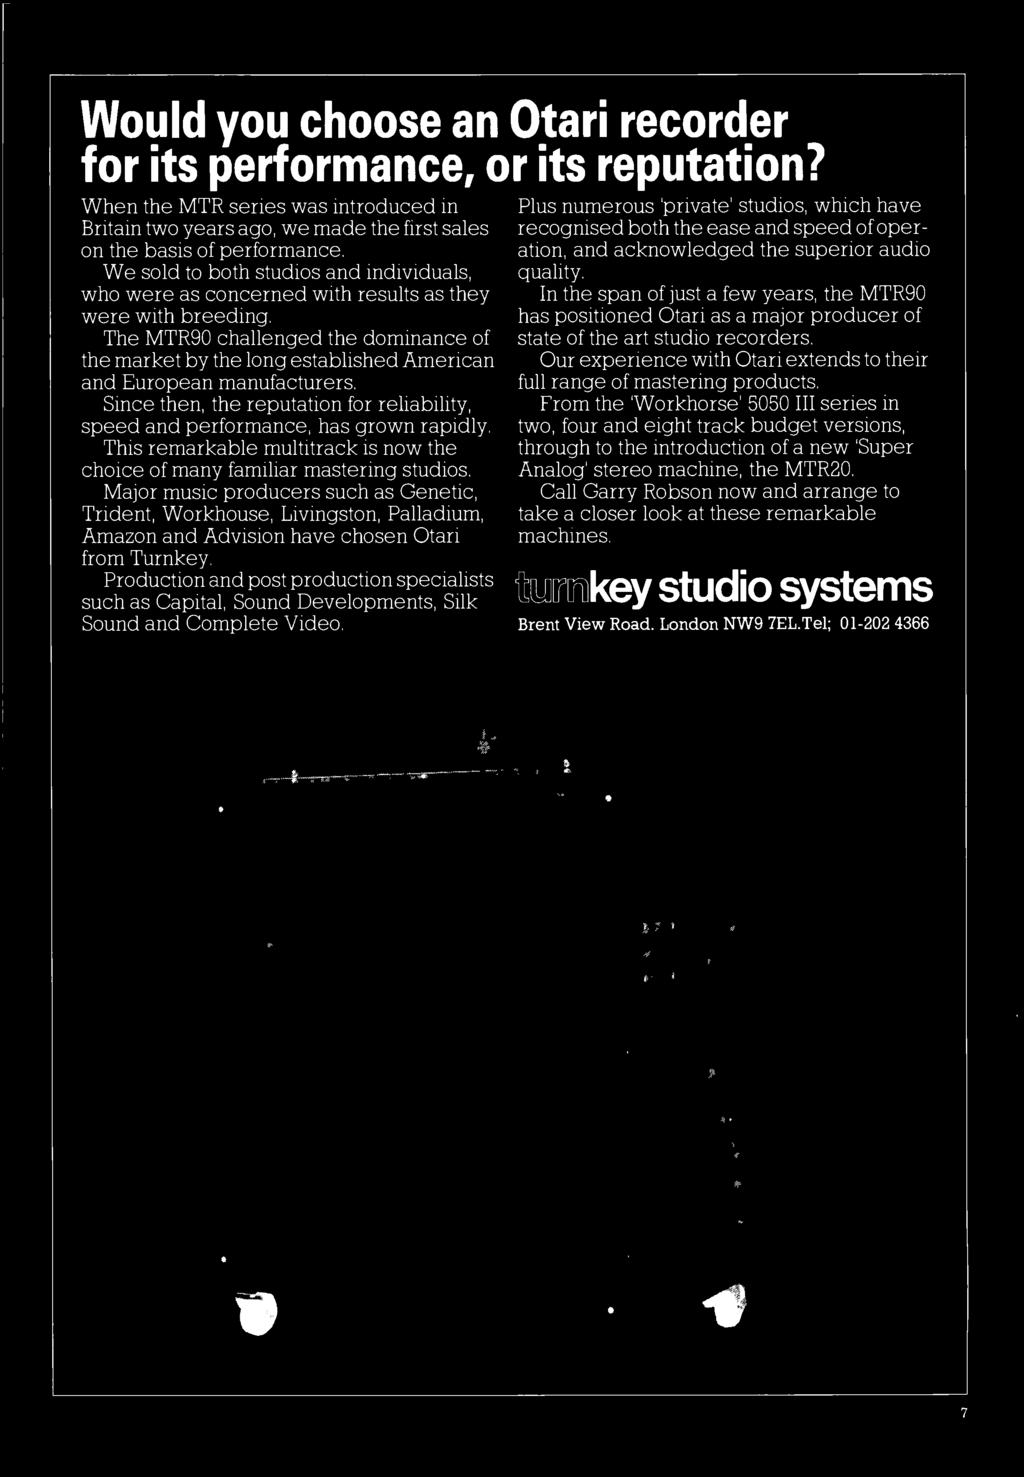 Studio And Br Rvie W Pdf 5 Channels 2 Octave Graphic Equaliser By 4558 The Mtr90 Challenged Dominance Of Market Long Established American European Manufacturers